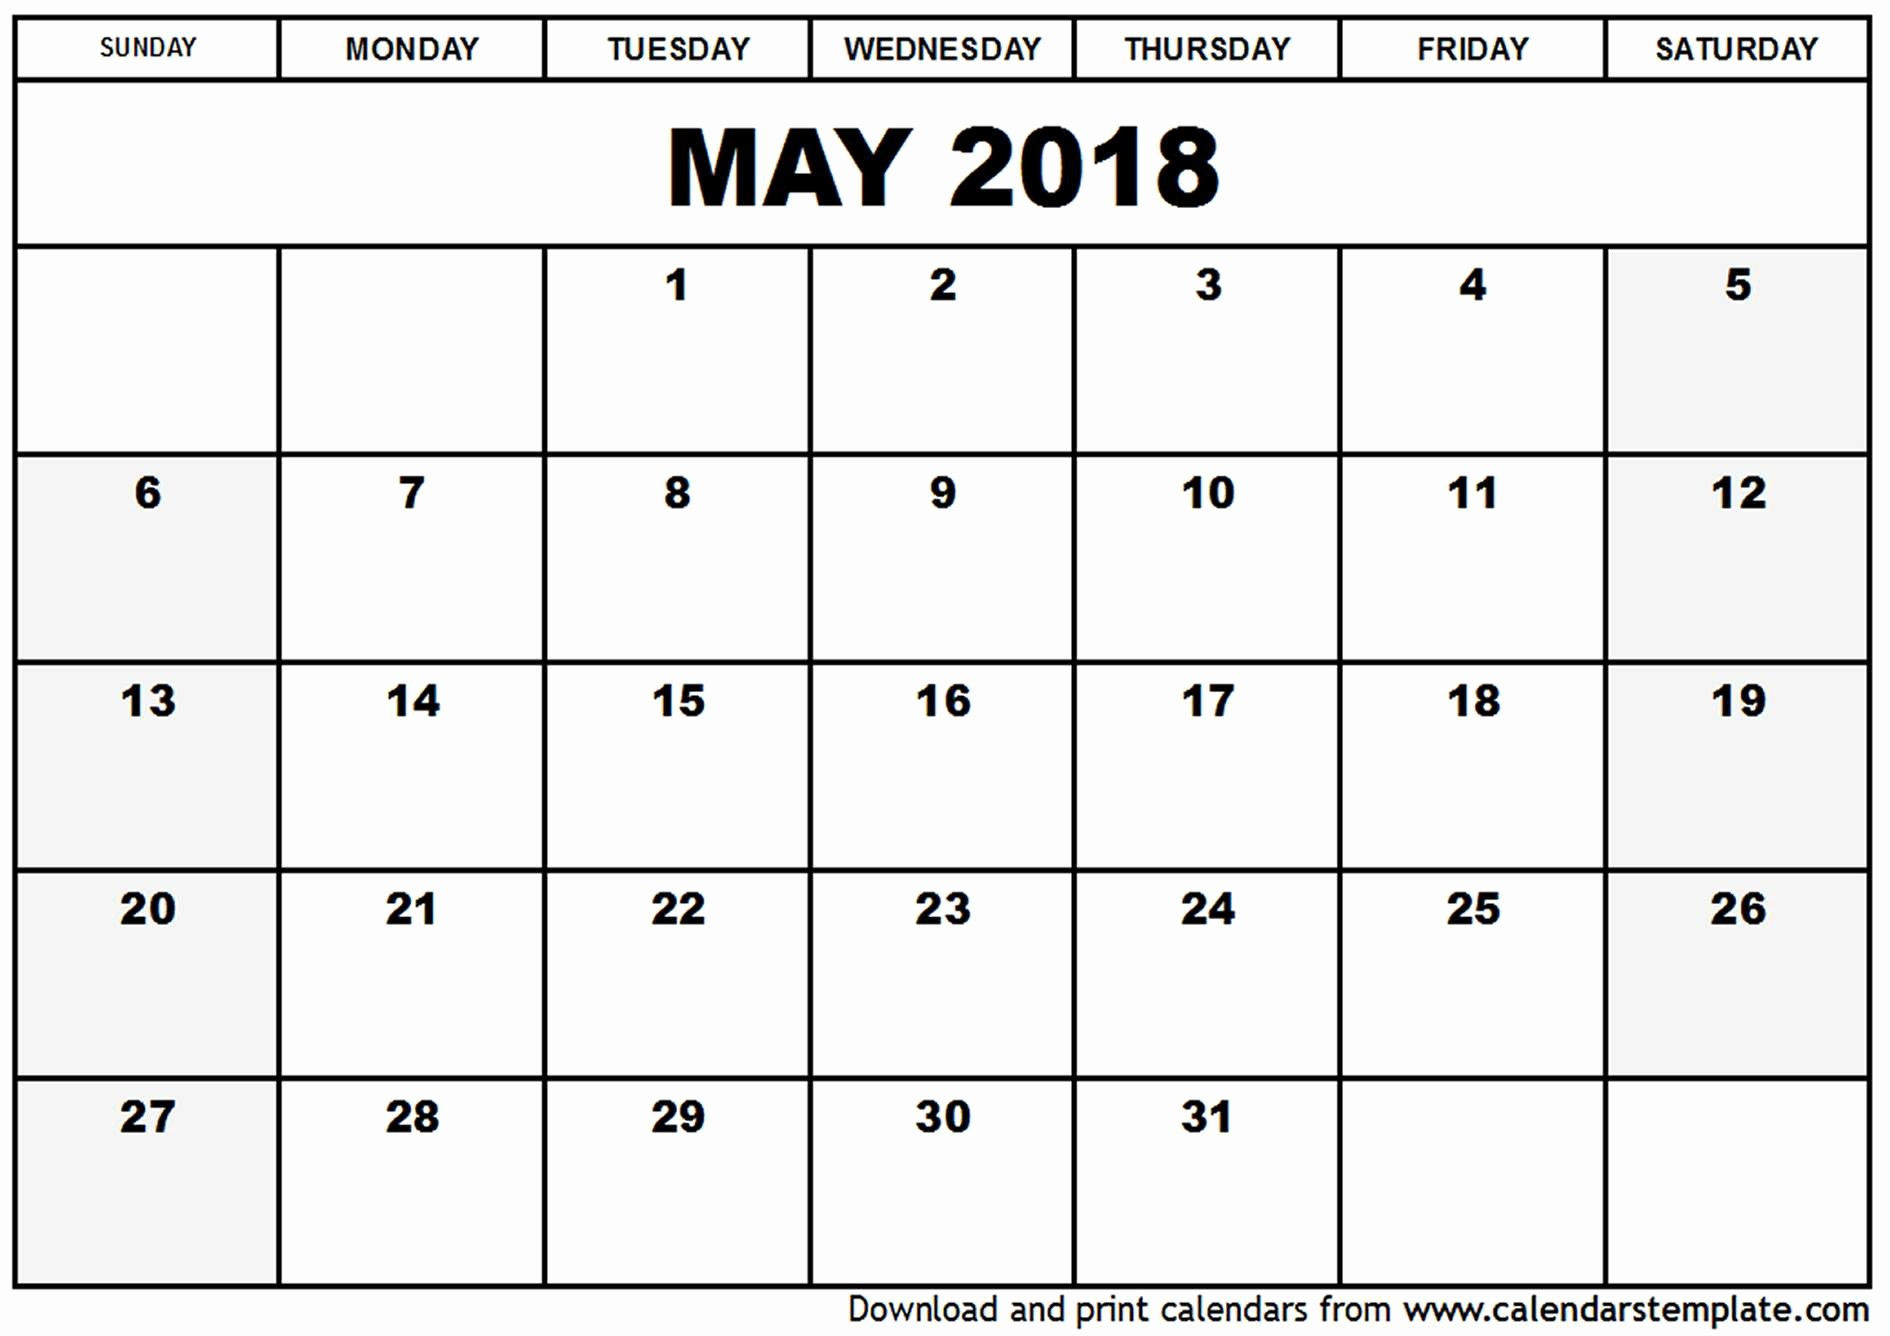 Free 2018 Monthly Calendar Template Best Of May 2018 Calendar Template